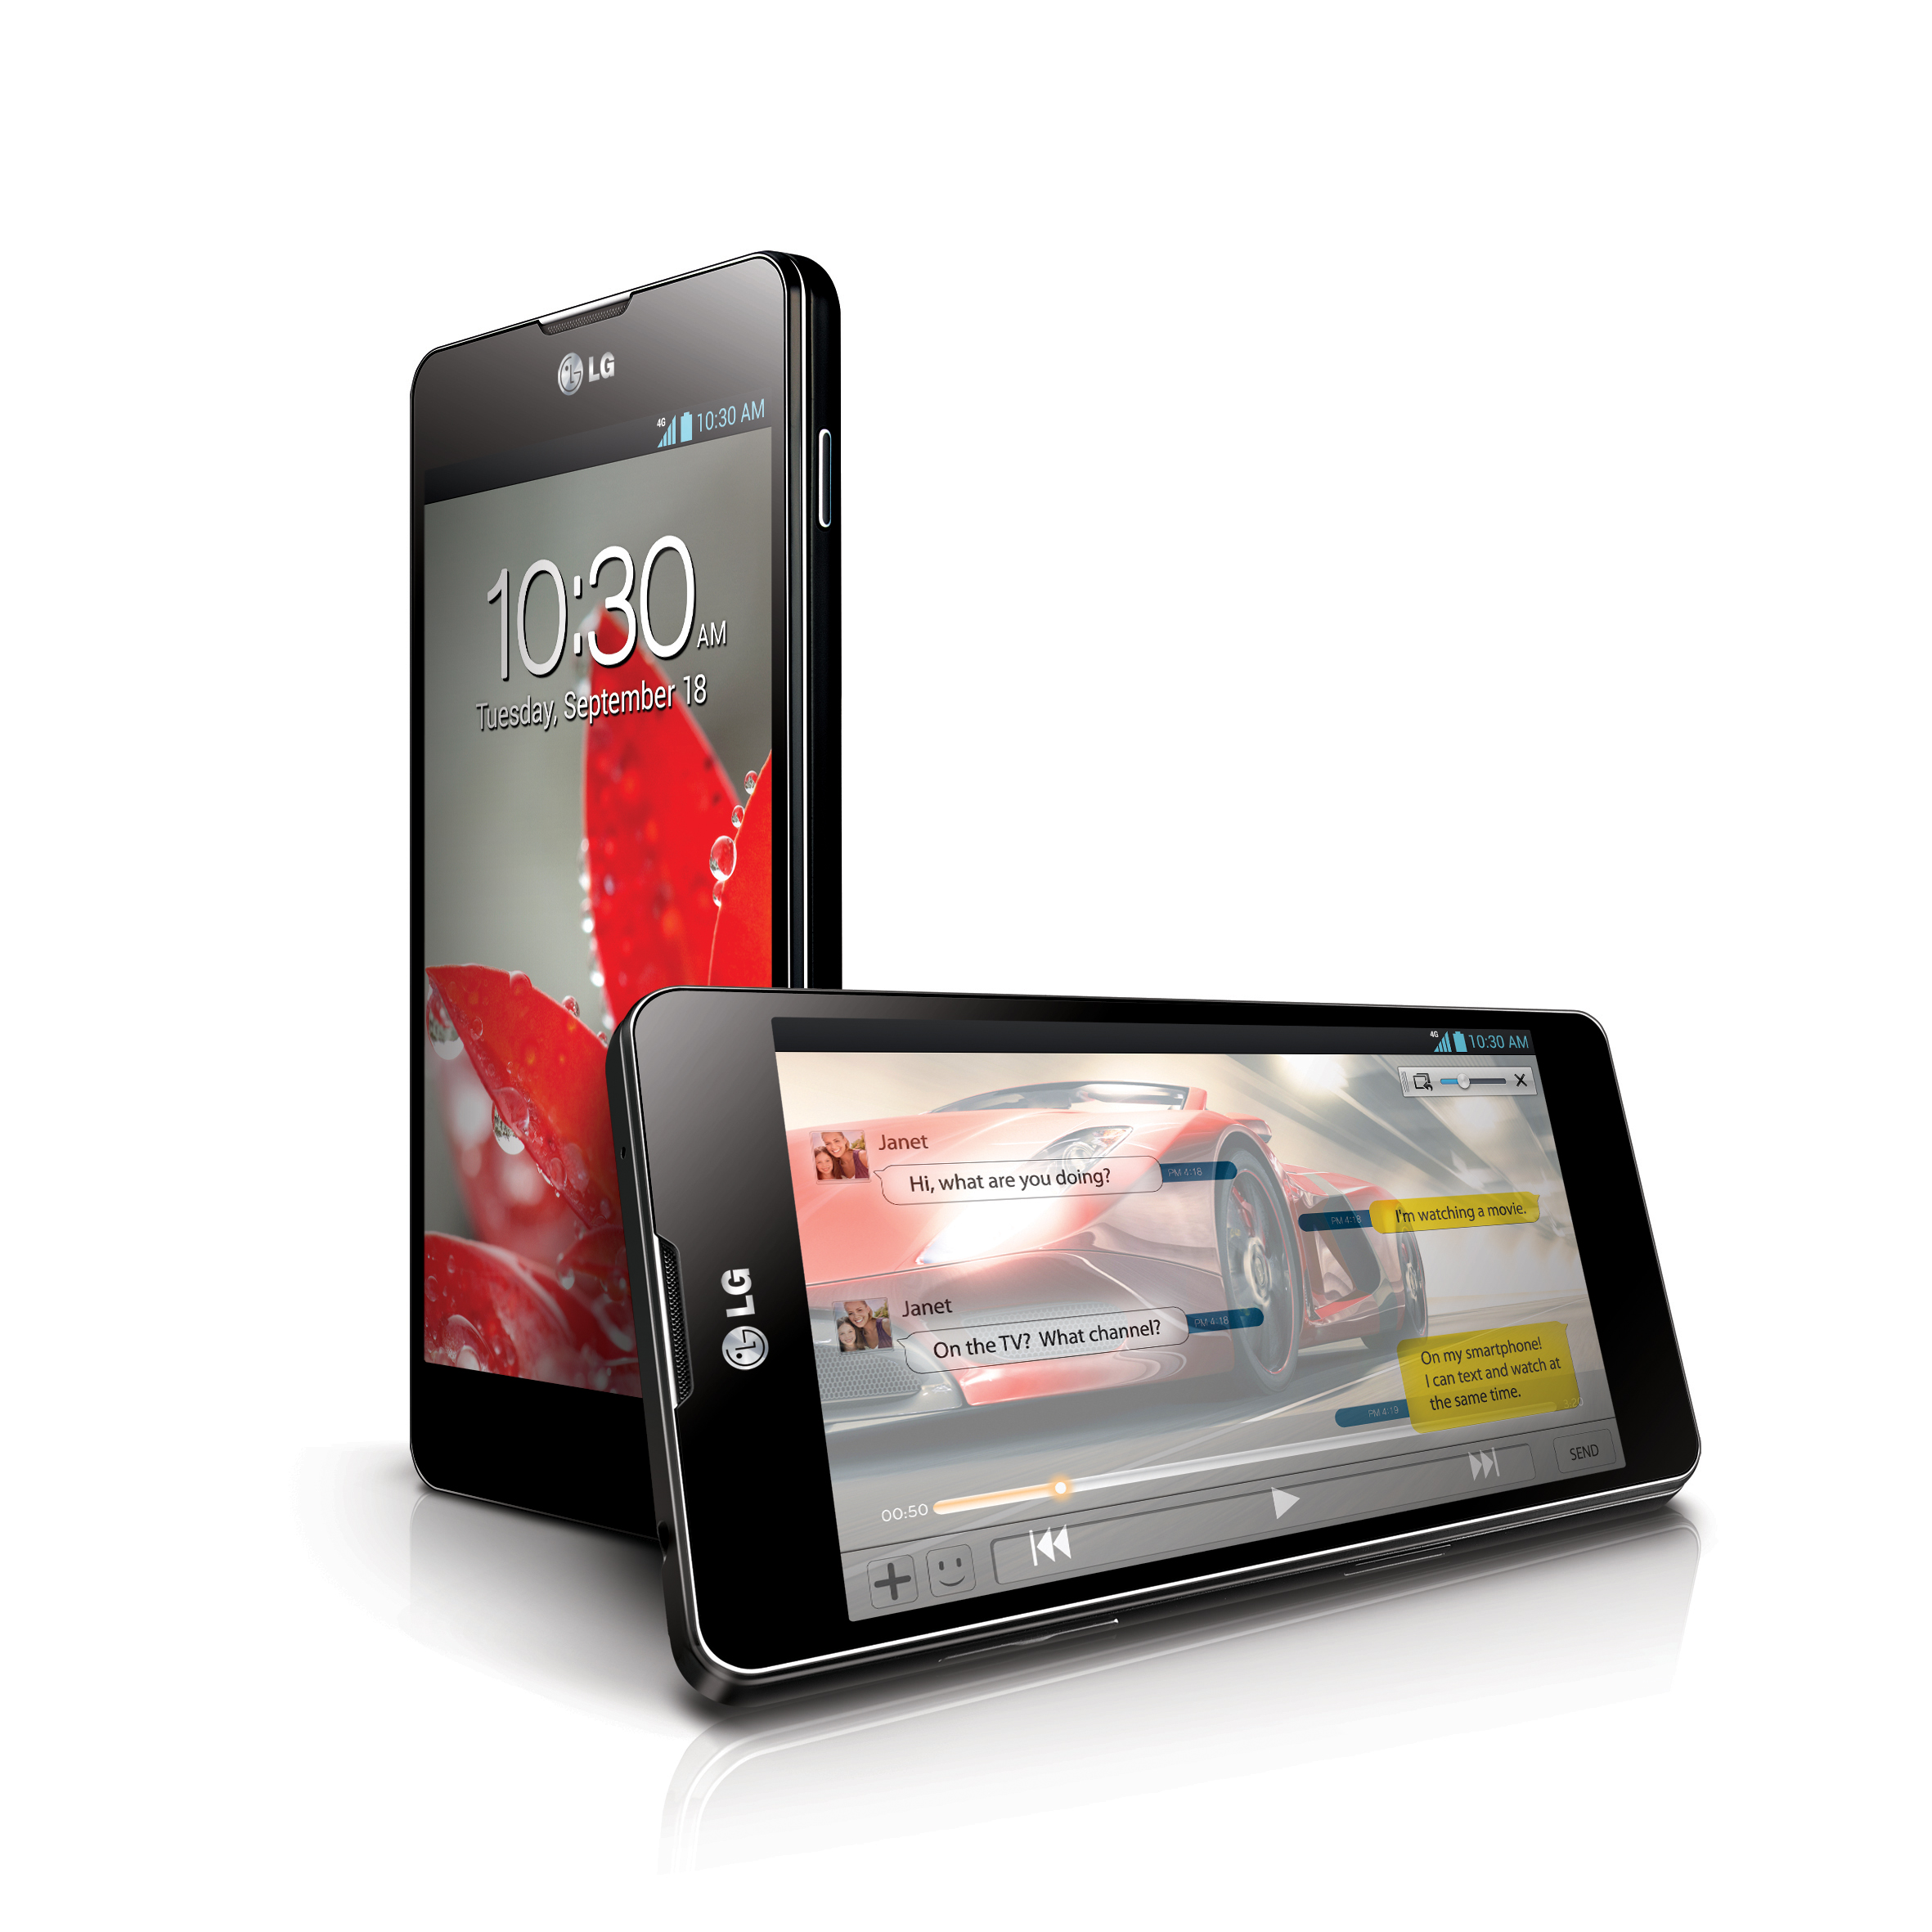 Vertical and horizontal 45-degree views of LG Optimus G